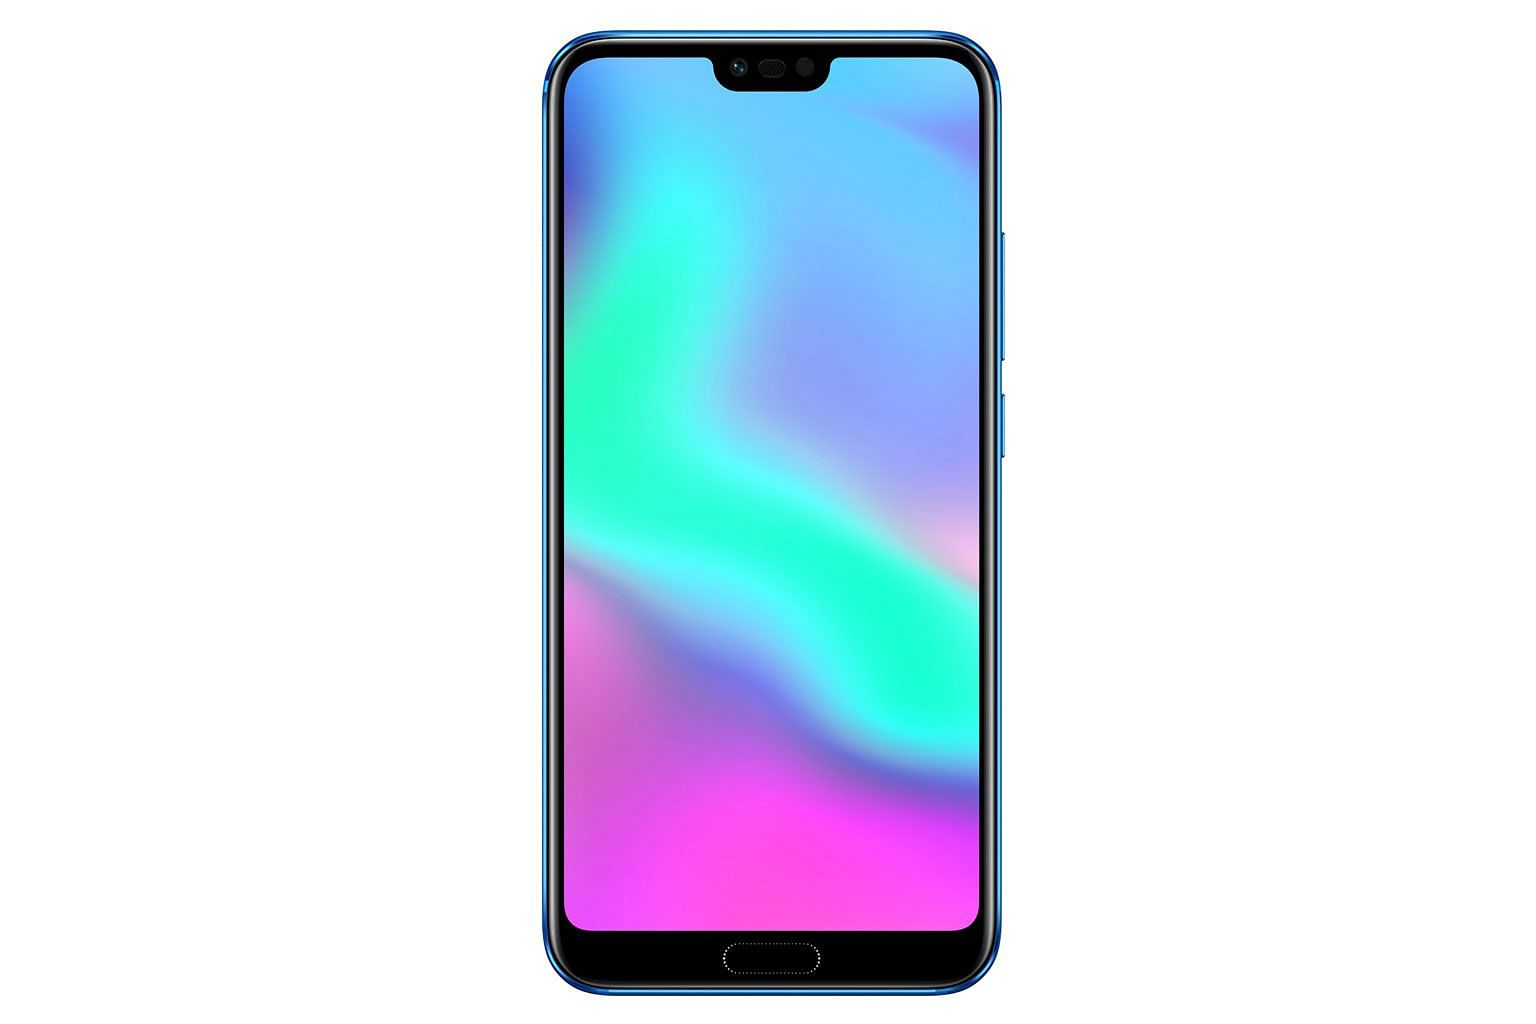 The Honor 10 has an optical coating that causes the colour of its glass back to appear either blue or purple when viewed from different angles.